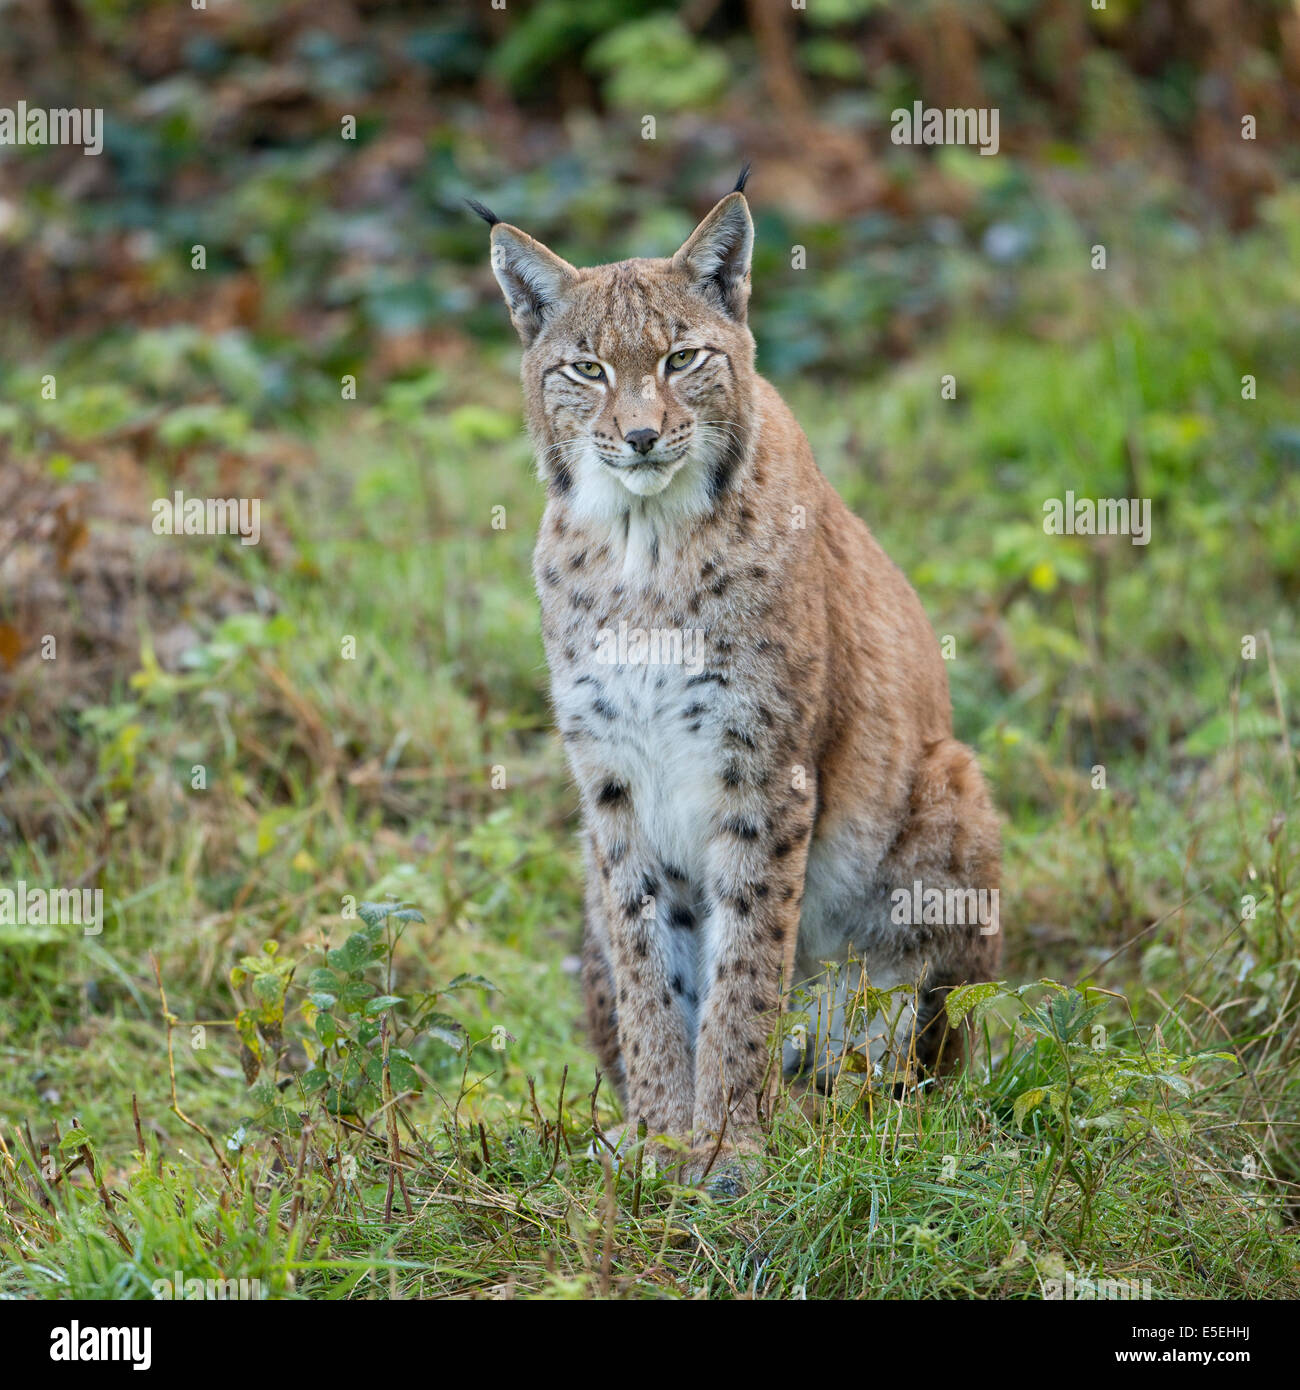 Eurasian Lynx (Lynx lynx), captive, Lower Saxony, Germany - Stock Image